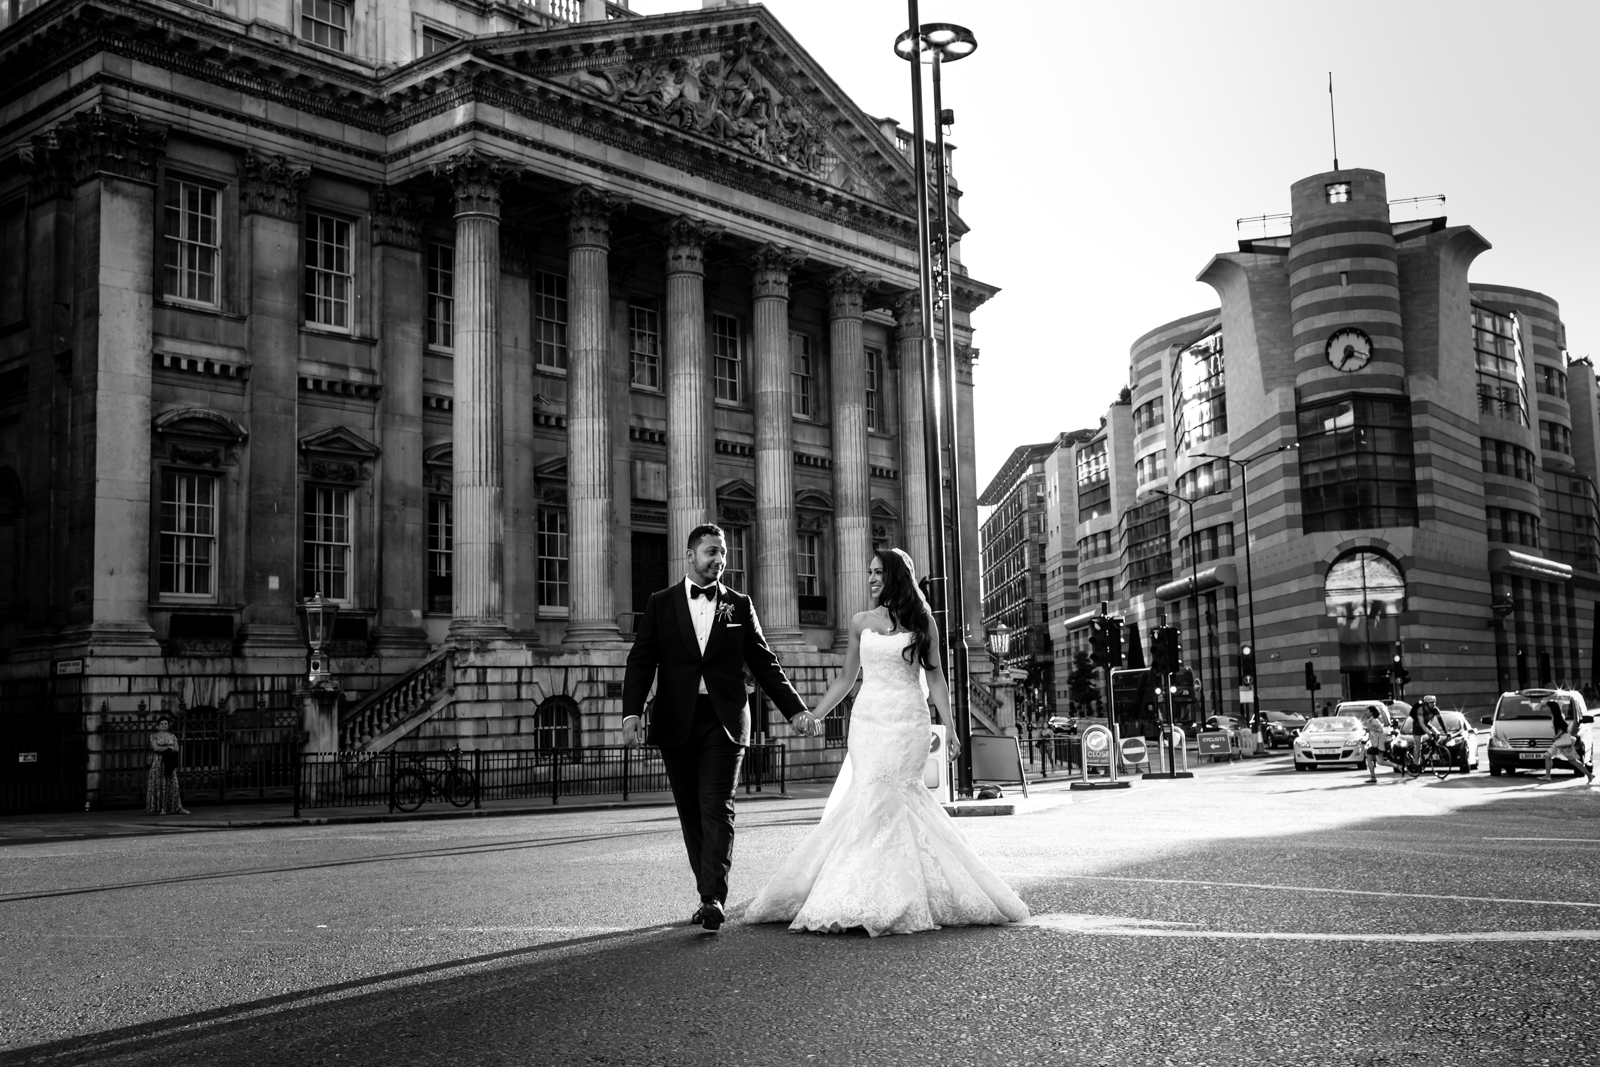 Royal-Exchange-Wedding-Photographer-London-701-2